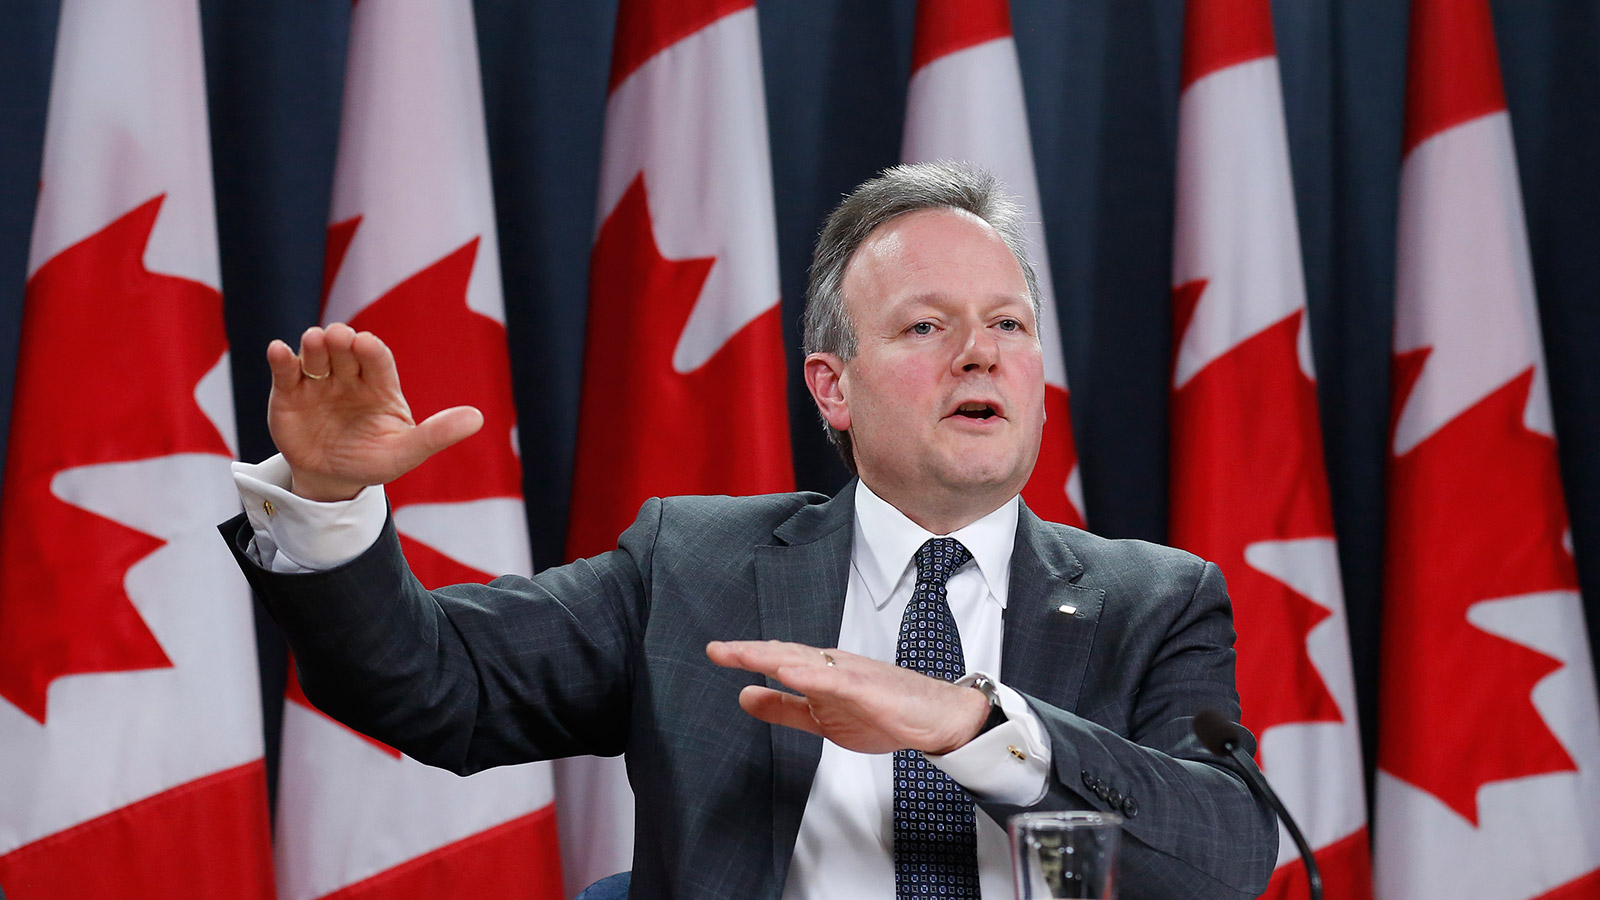 Bank of Canada Governor Stephen Poloz. (Chris Wattie/Reuters)